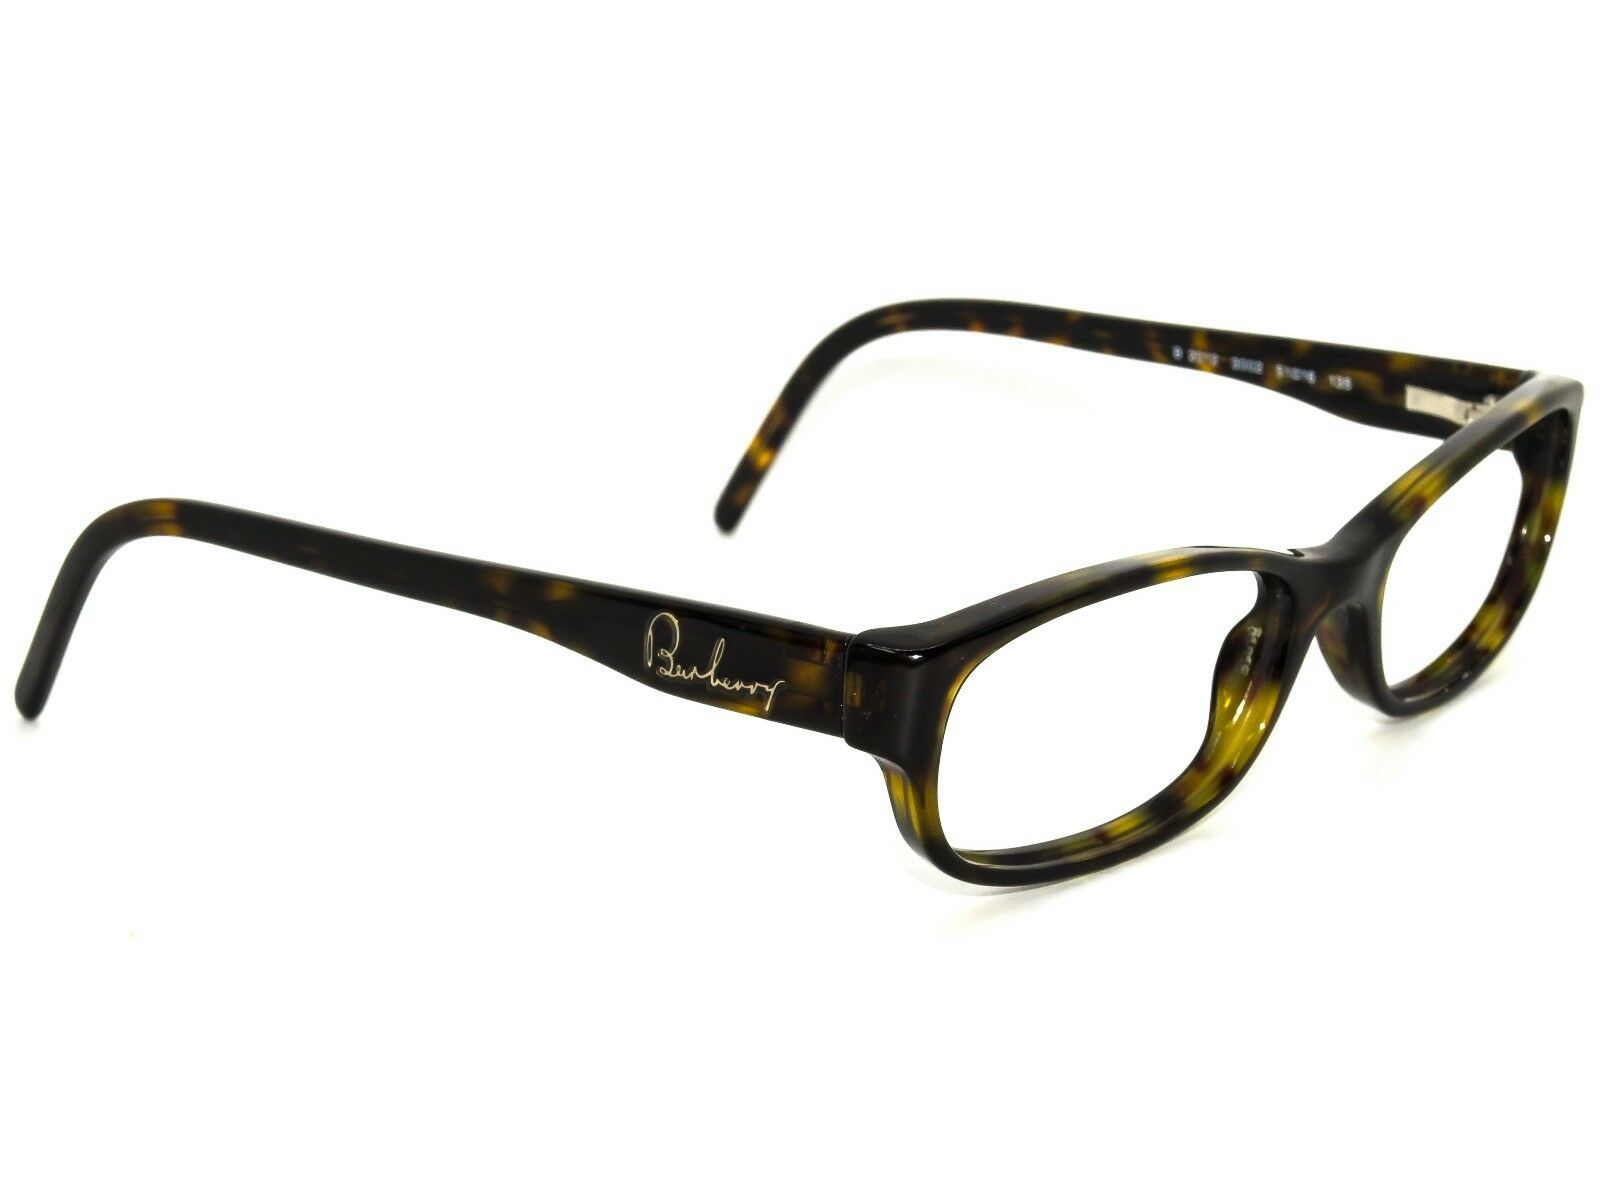 Burberry B 2012 3002 Eyeglasses